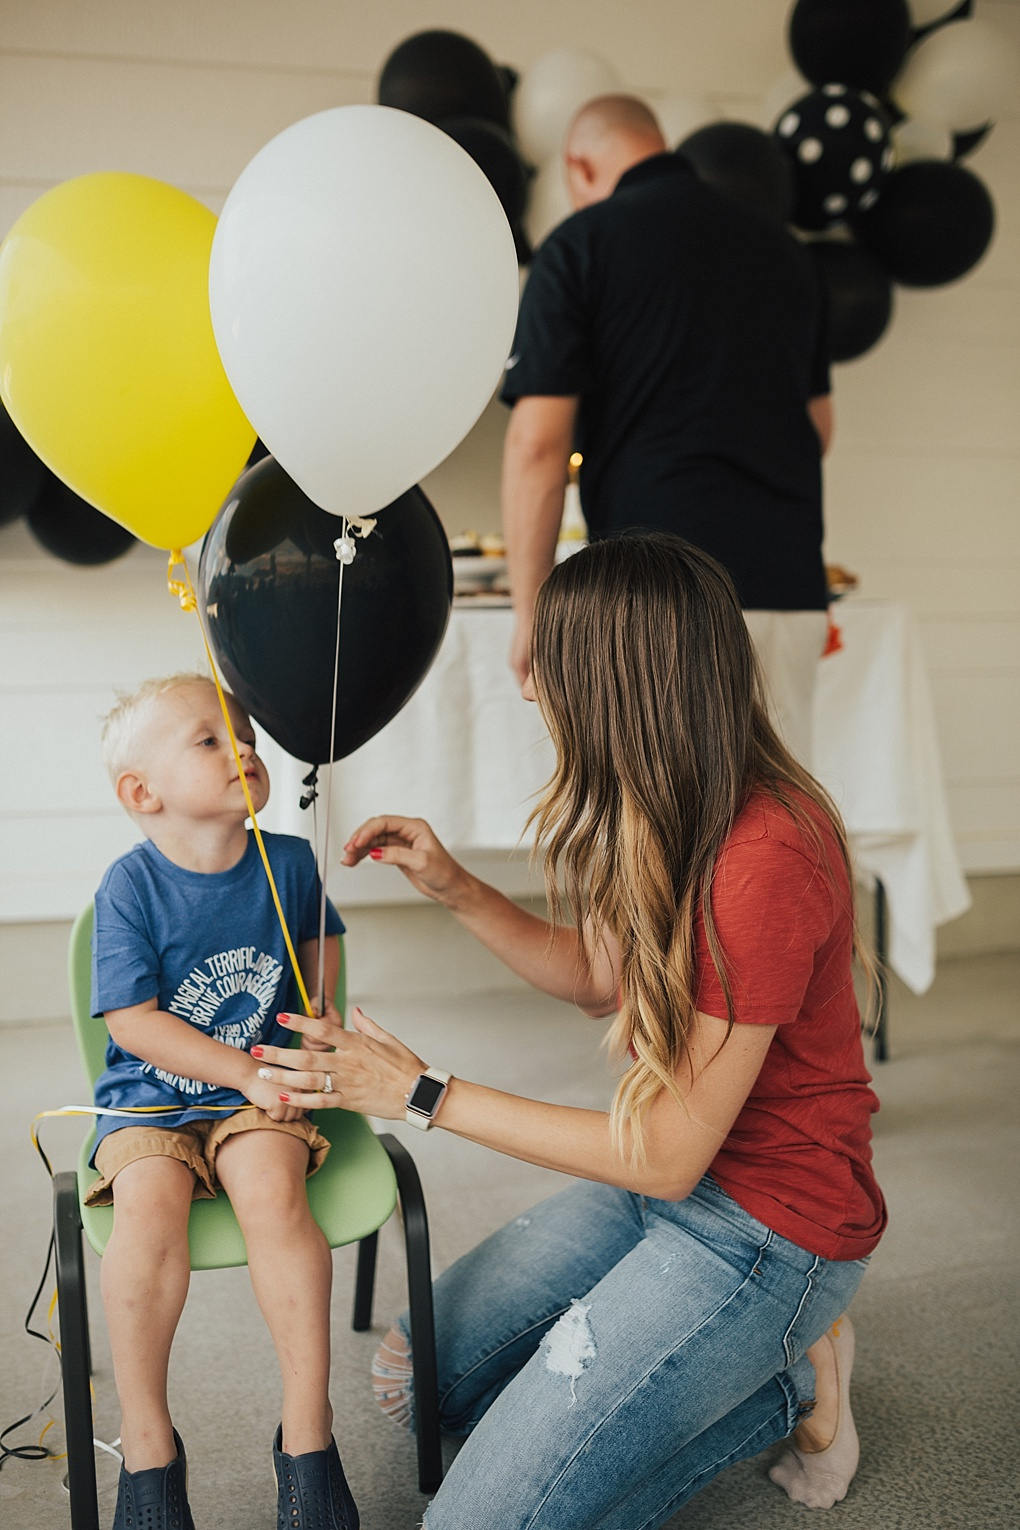 A Modern Tractor Birthday Party by Utah mom blogger Dani Marie